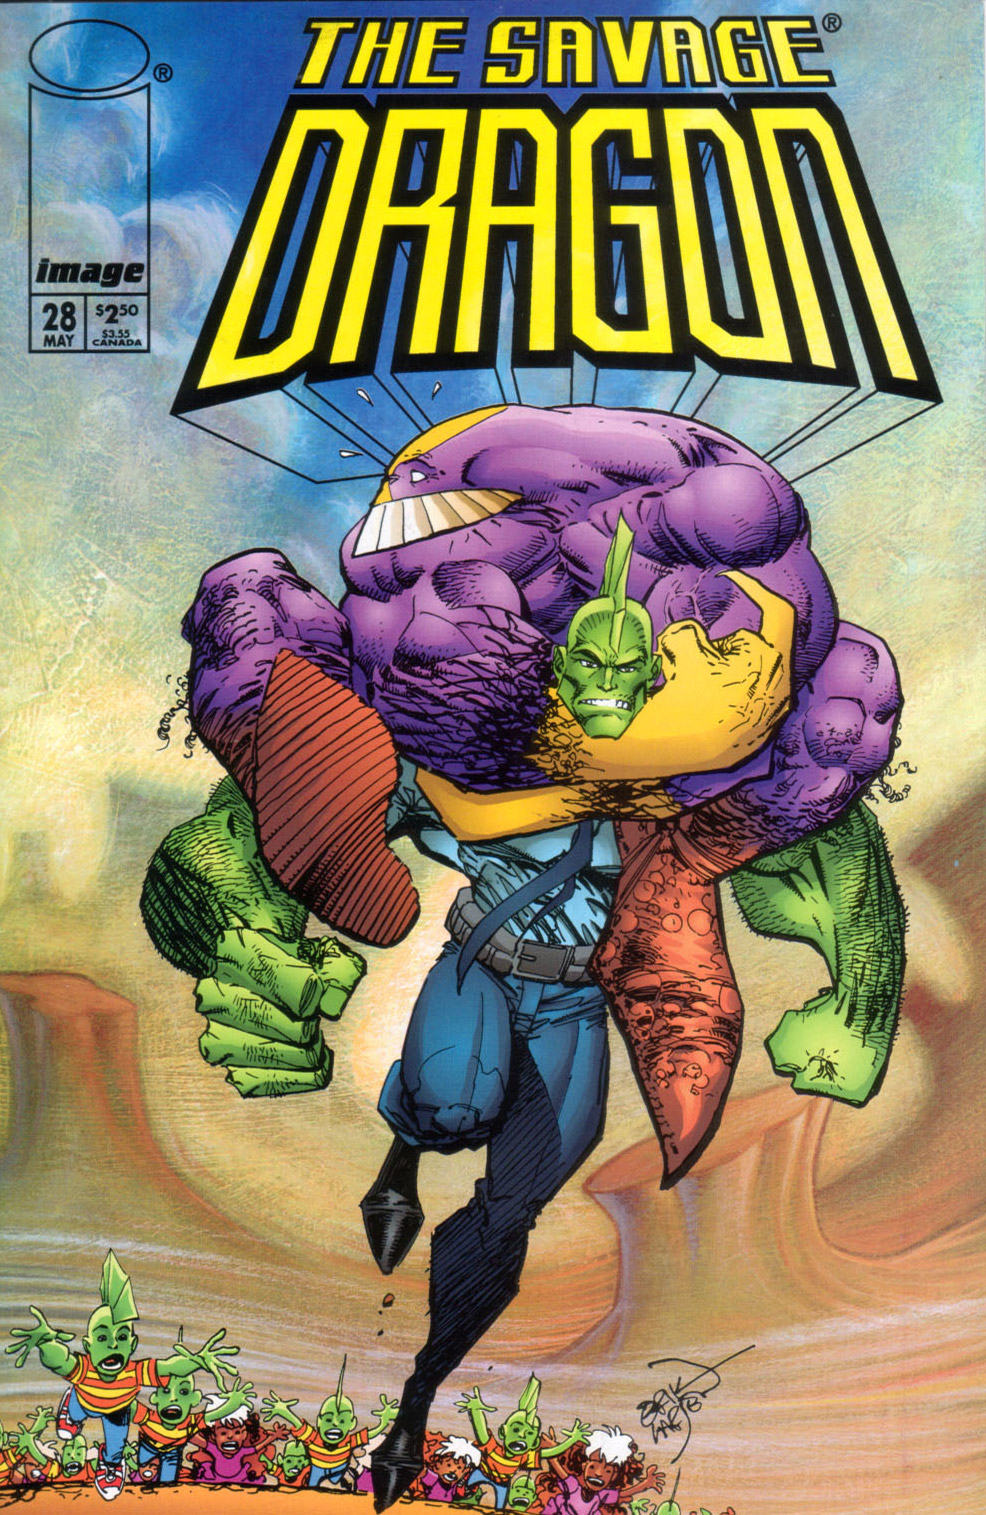 Cover Savage Dragon Vol.2 #28